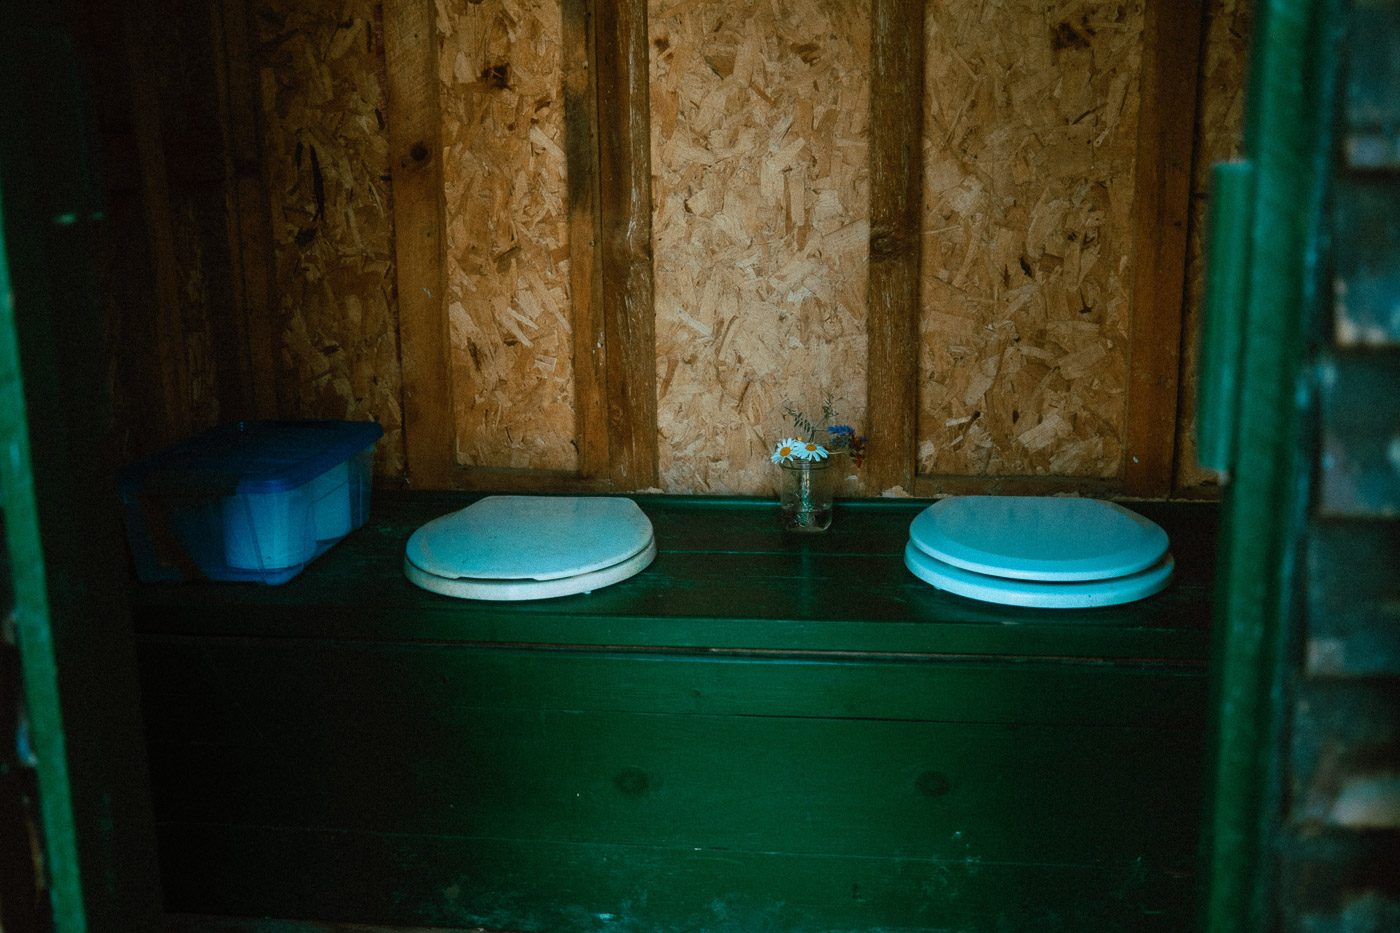 Interior view of dedicated outhouse for glamping tent guests of Pine Falls Lodge, located in the Greater Sudbury Area (Markstay-Warren)